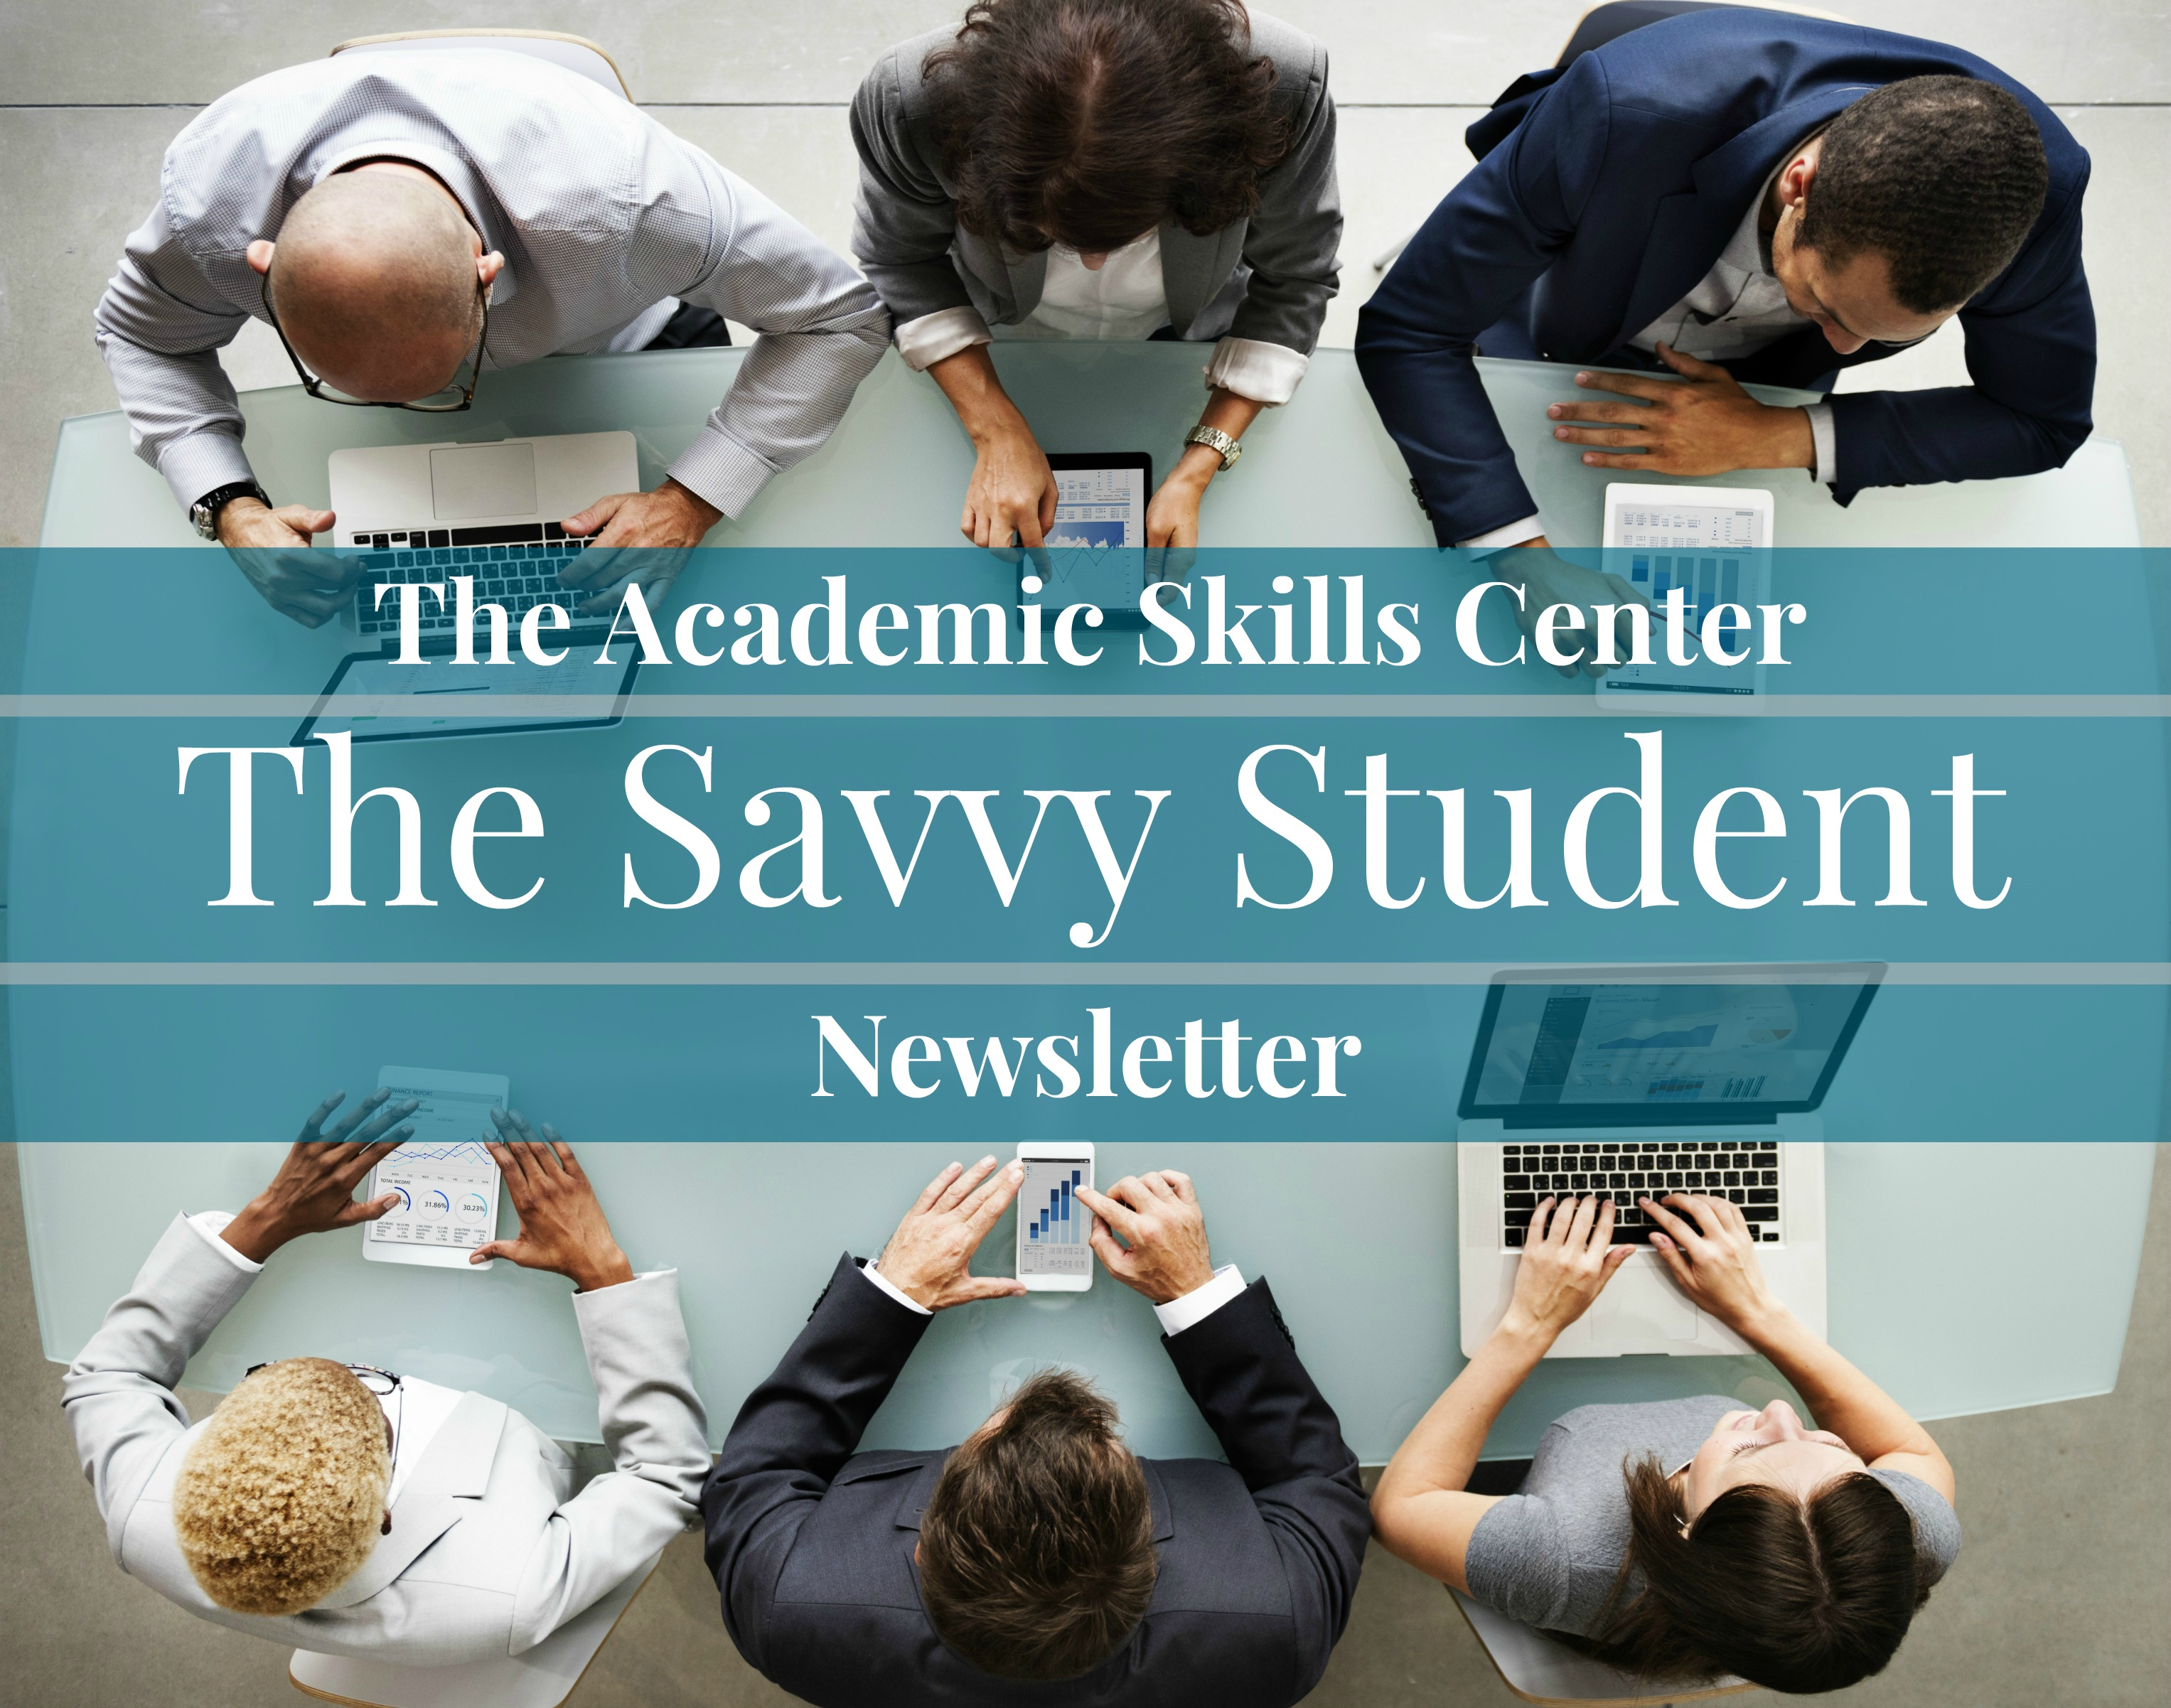 The Savvy Student Newsletter